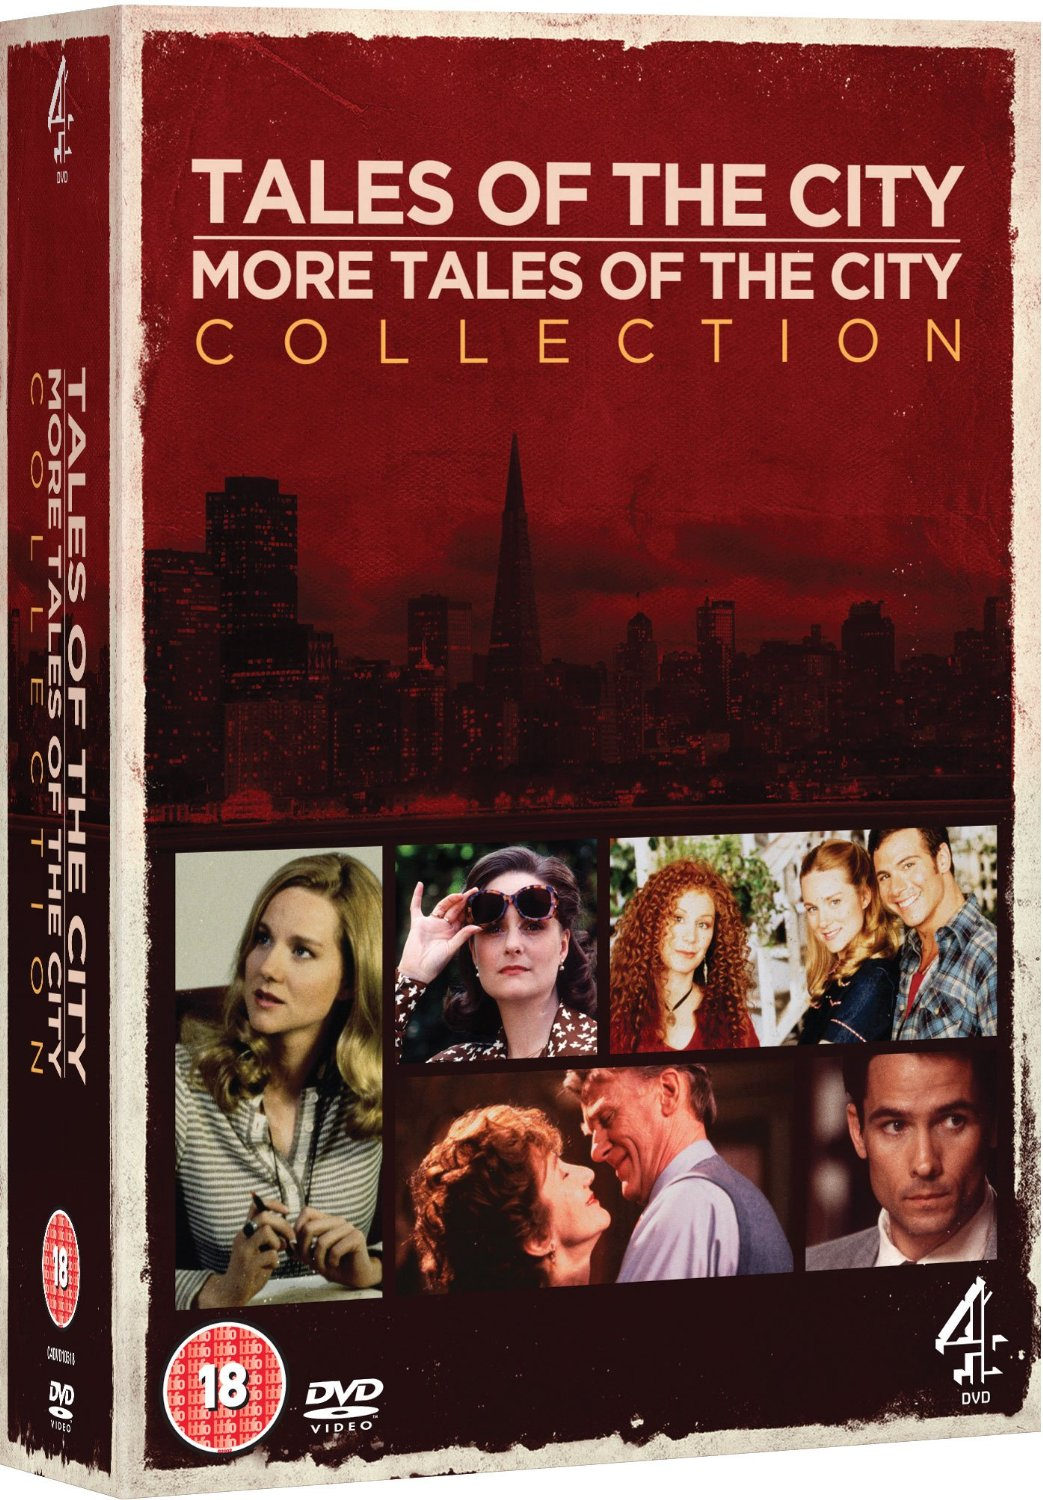 Buy Tales of the City/More Tales of the City Collection